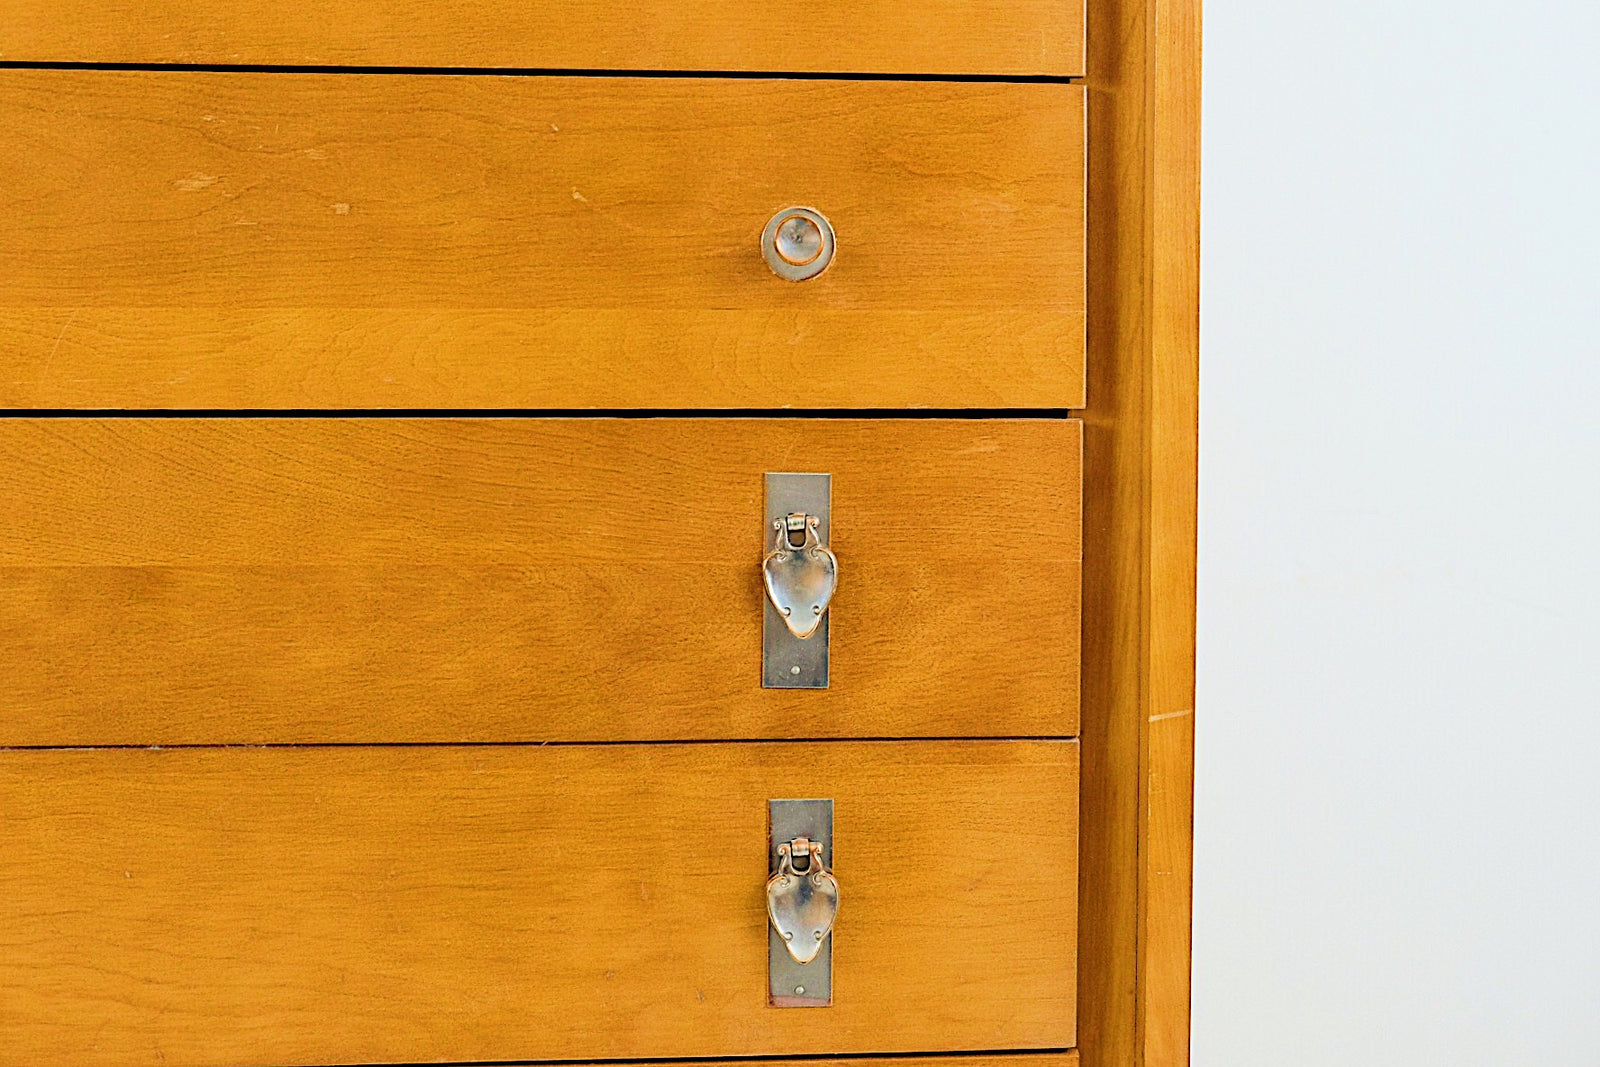 Atlas Furniture Company Mid Century Modern Five Drawer Tall Dresser with Trumpet and Leaf Pulls